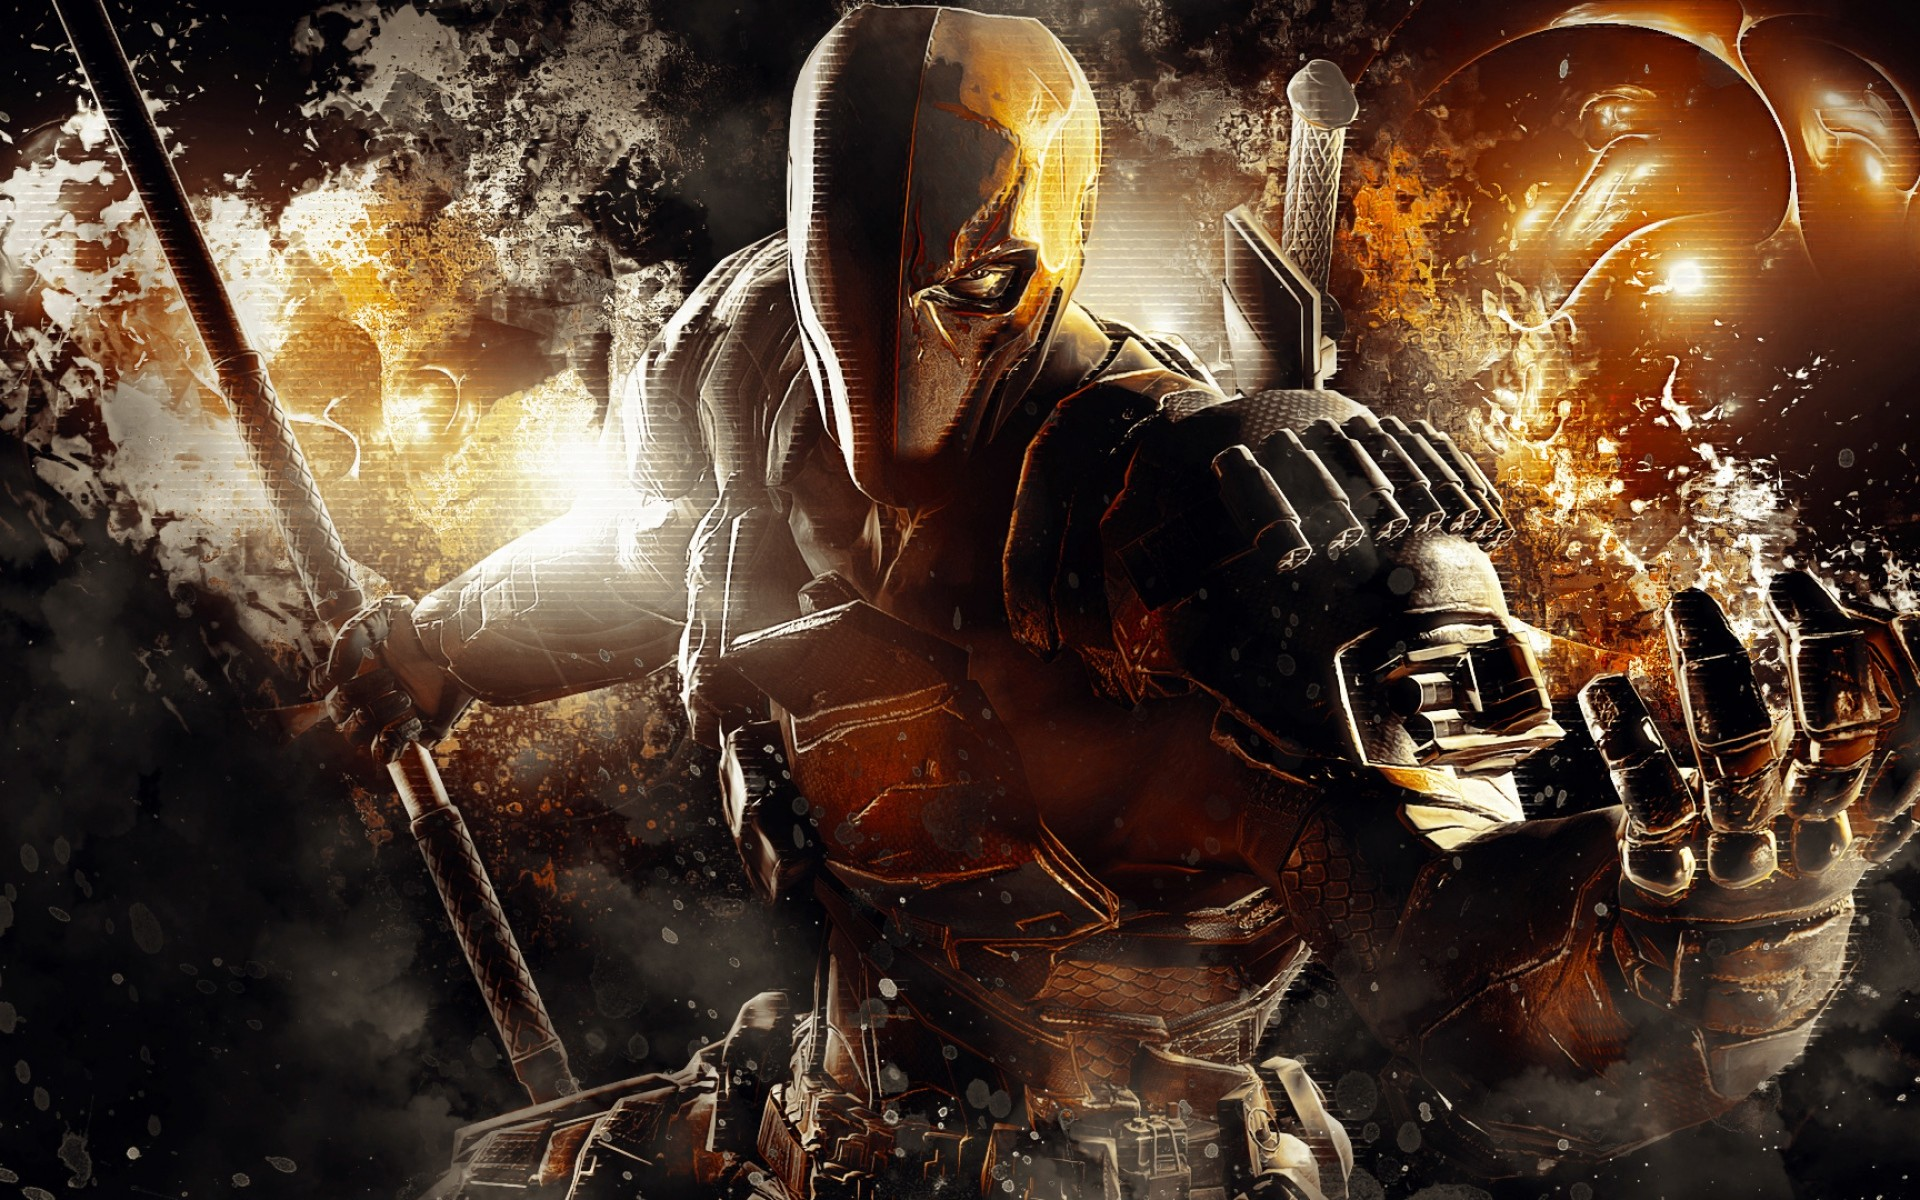 cool video game wallpapers ·①